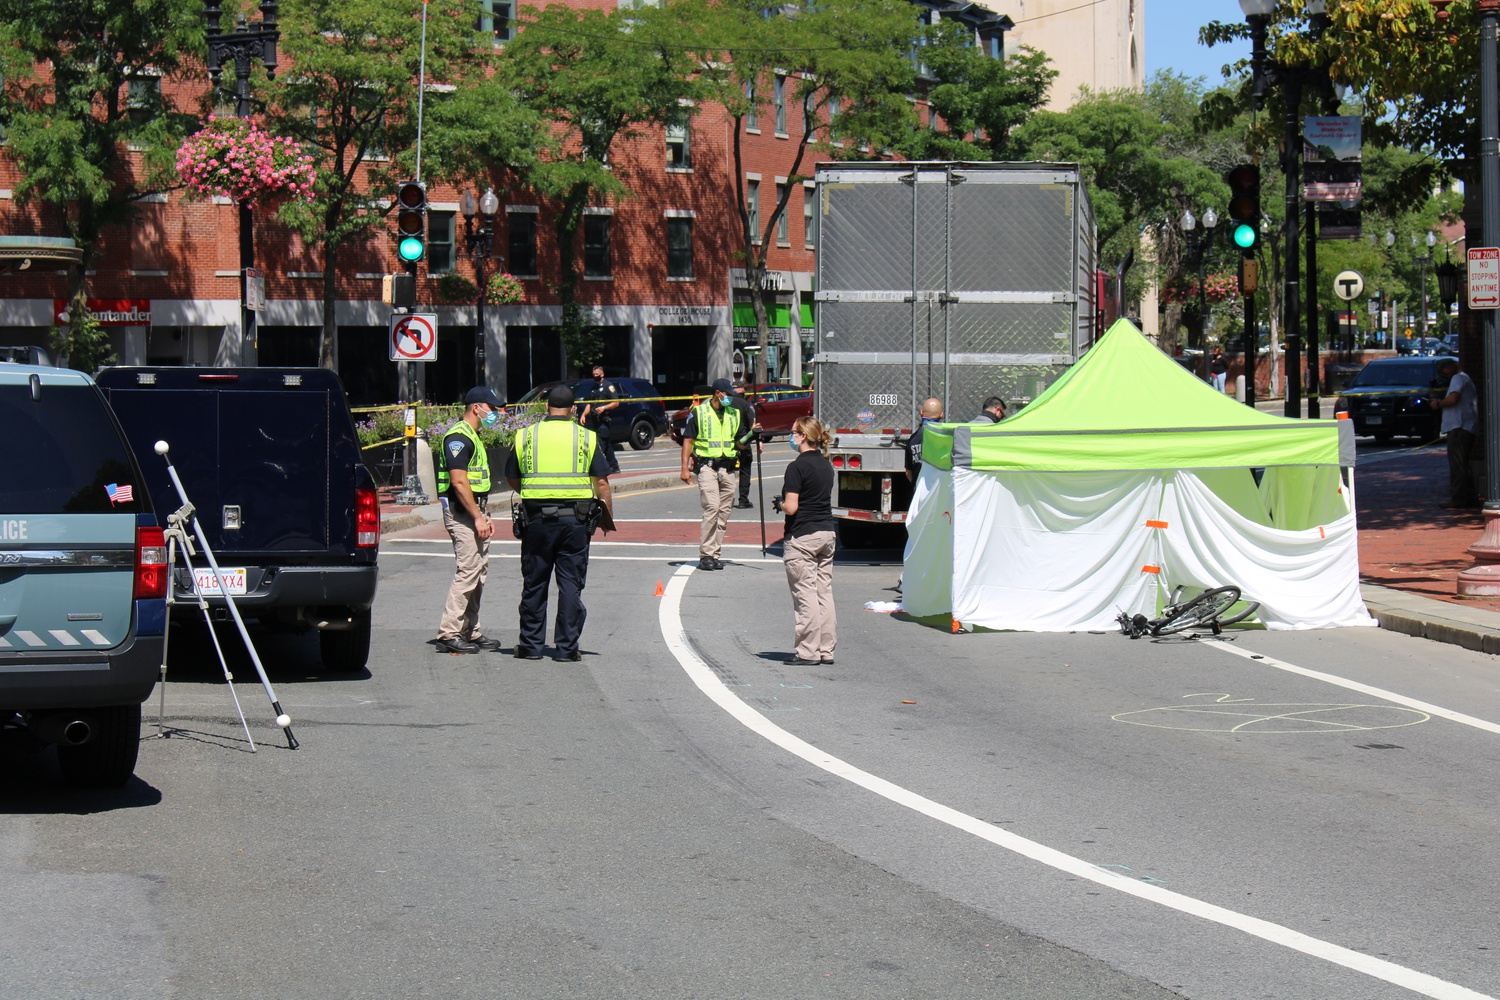 A fatal accident shut down Harvard Square Tuesday morning and afternoon.